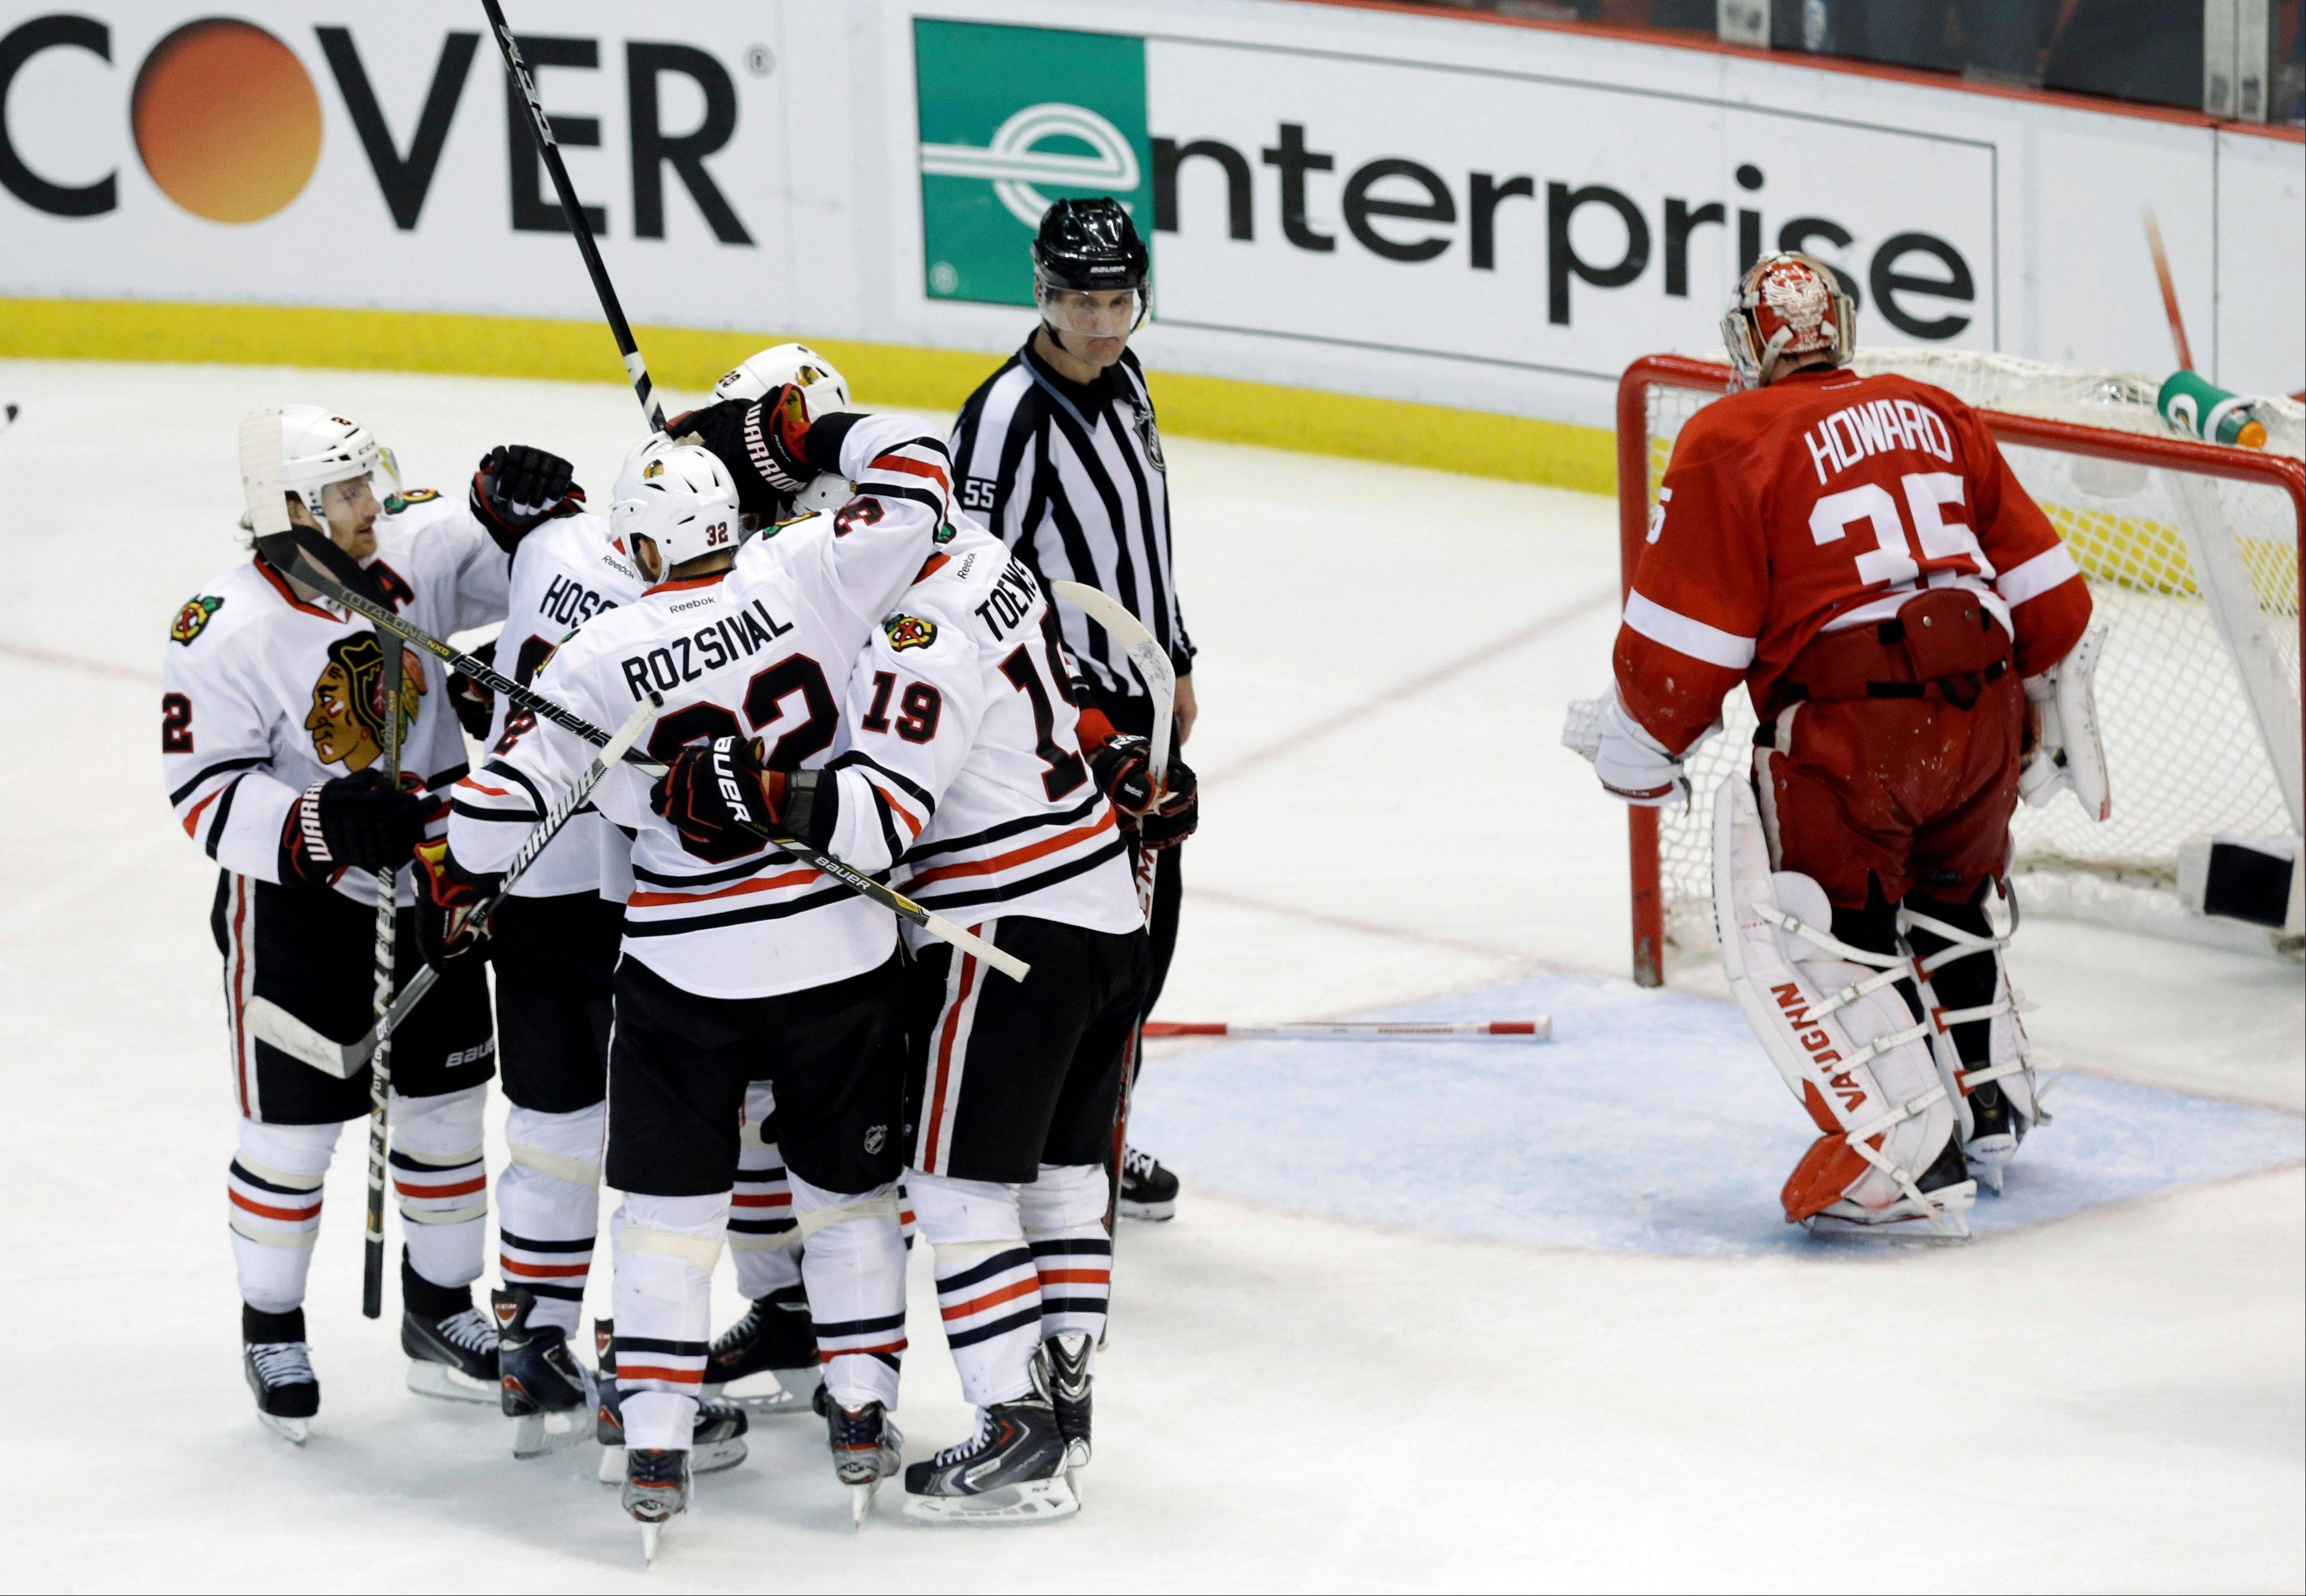 Chicago Blackhawks left wing Bryan Bickell (29) celebrates scoring a goal against the Detroit Red Wings with teammates during the third period in Game 6 of the Western Conference semifinals in the NHL hockey Stanley Cup playoffs in Detroit, Monday, May 27, 2013.